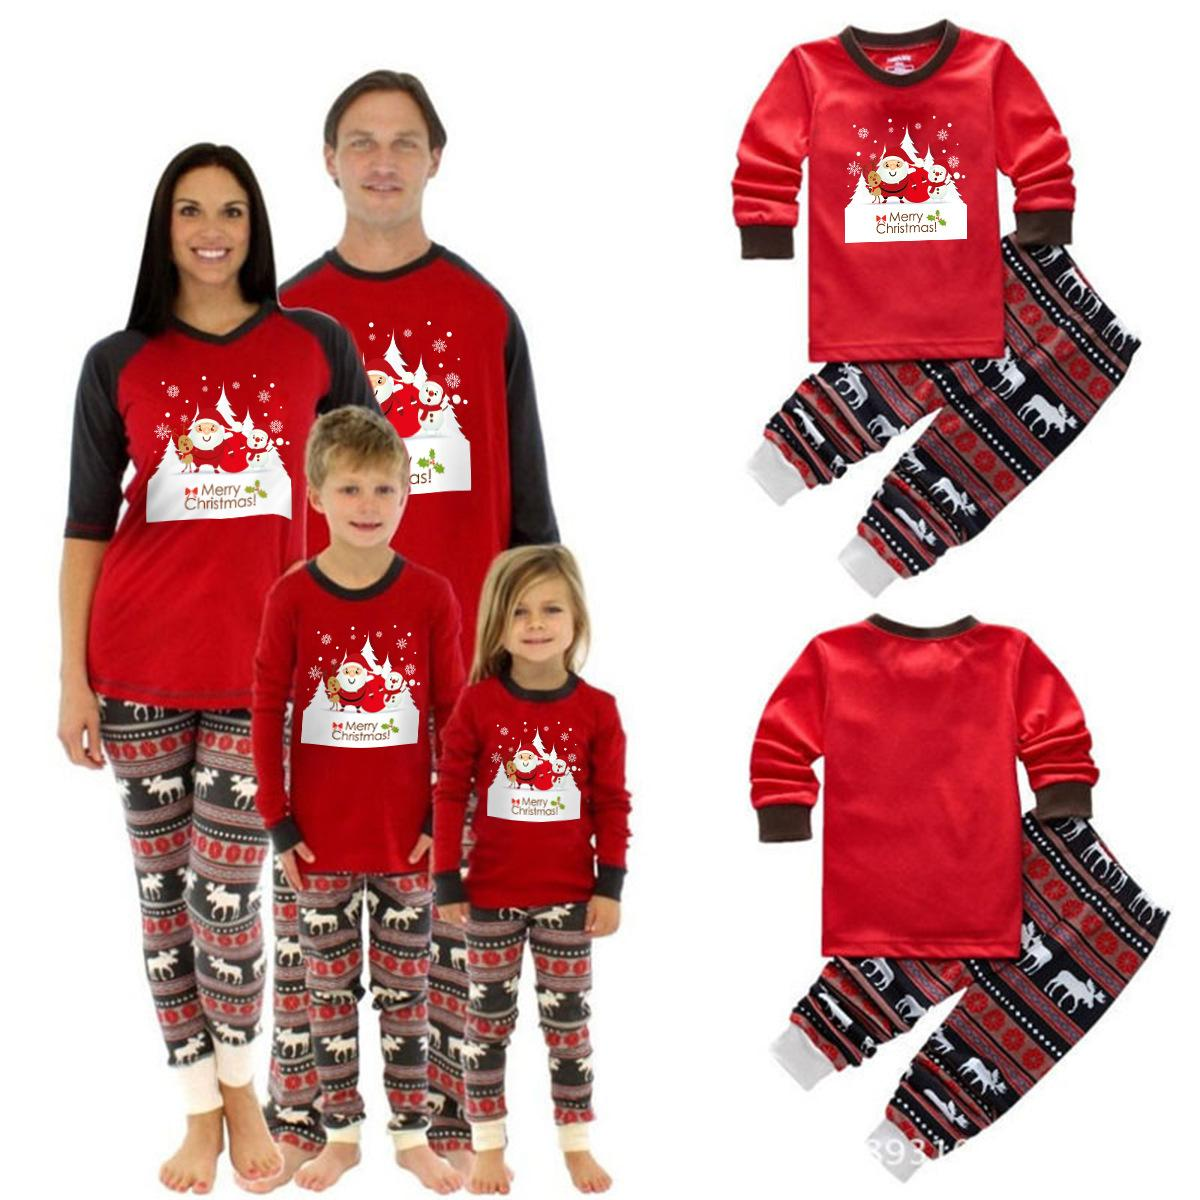 2018 Xmas Moose Sleepwear Fairy Christmas Deer Elk Family Pajamas Set Adult  Kids Striped Parent Child Nightwear Party Clothing Homewear Best Family  Matching ... a8a3d1fb4